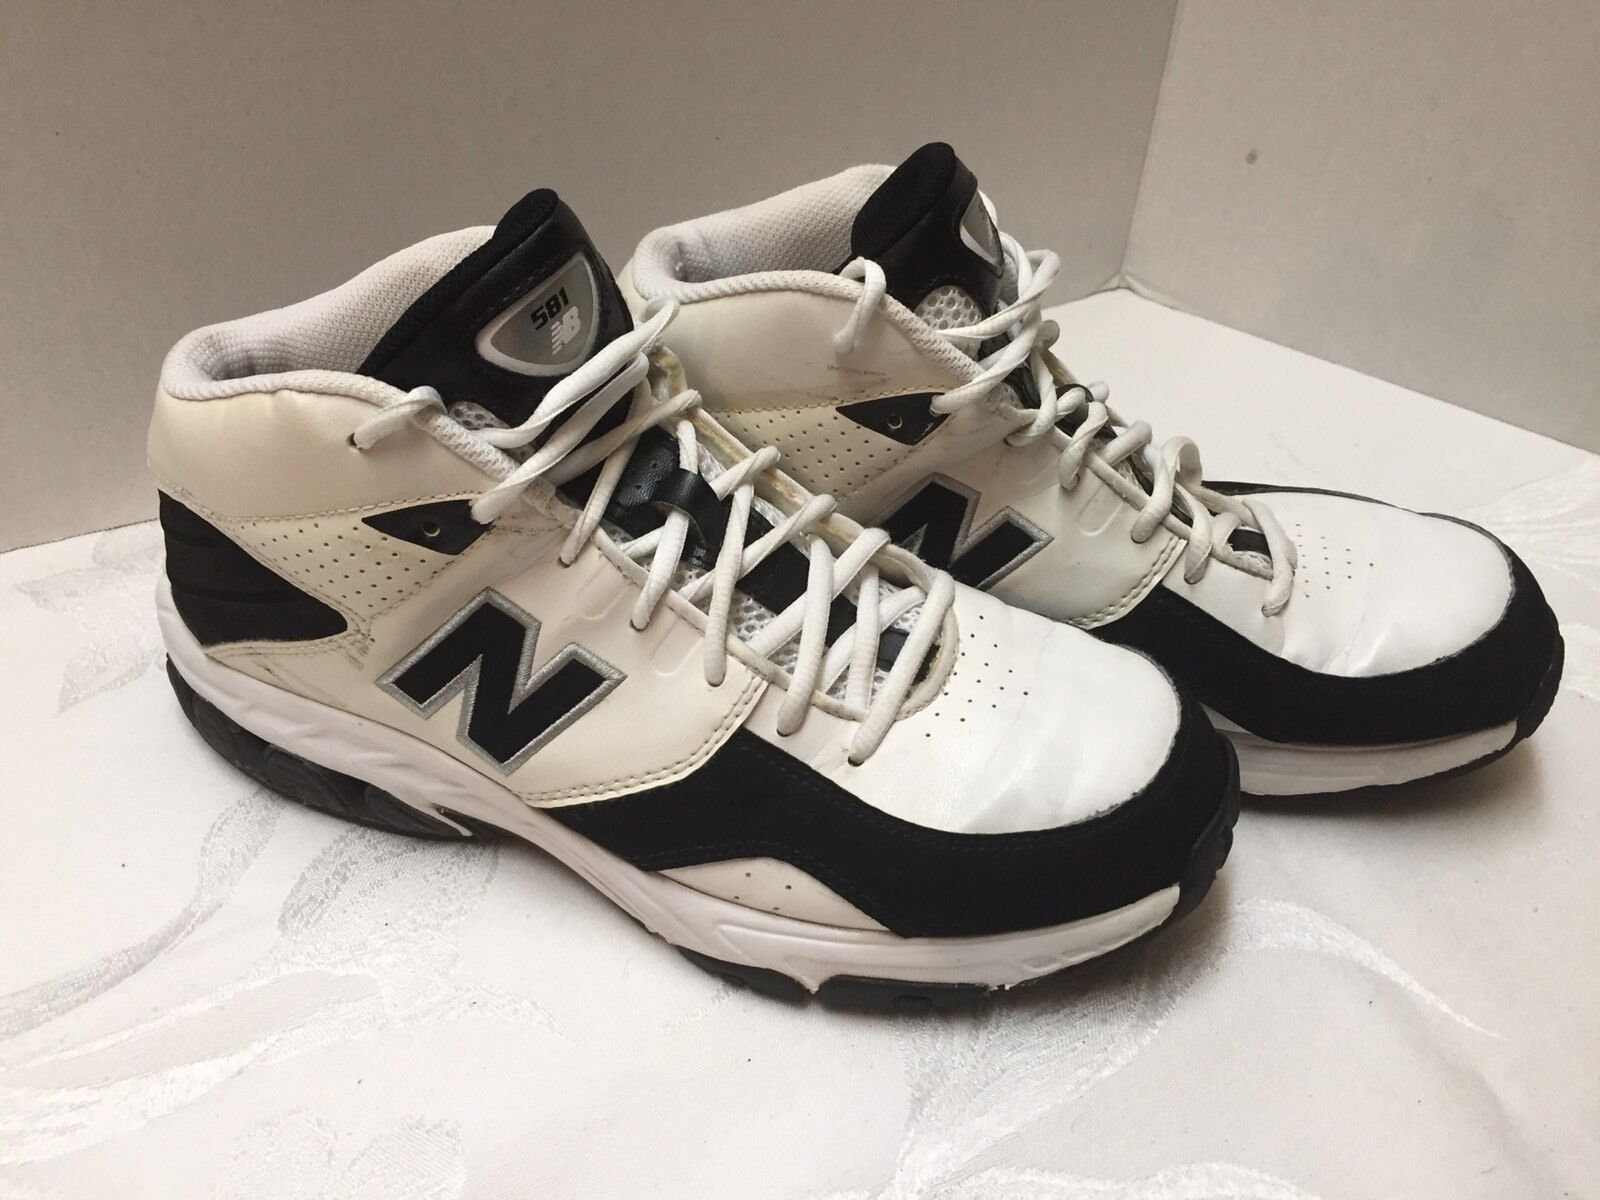 New Balance 581 Men's Basketball shoes Size 8 BB581WB Excellent LOOK